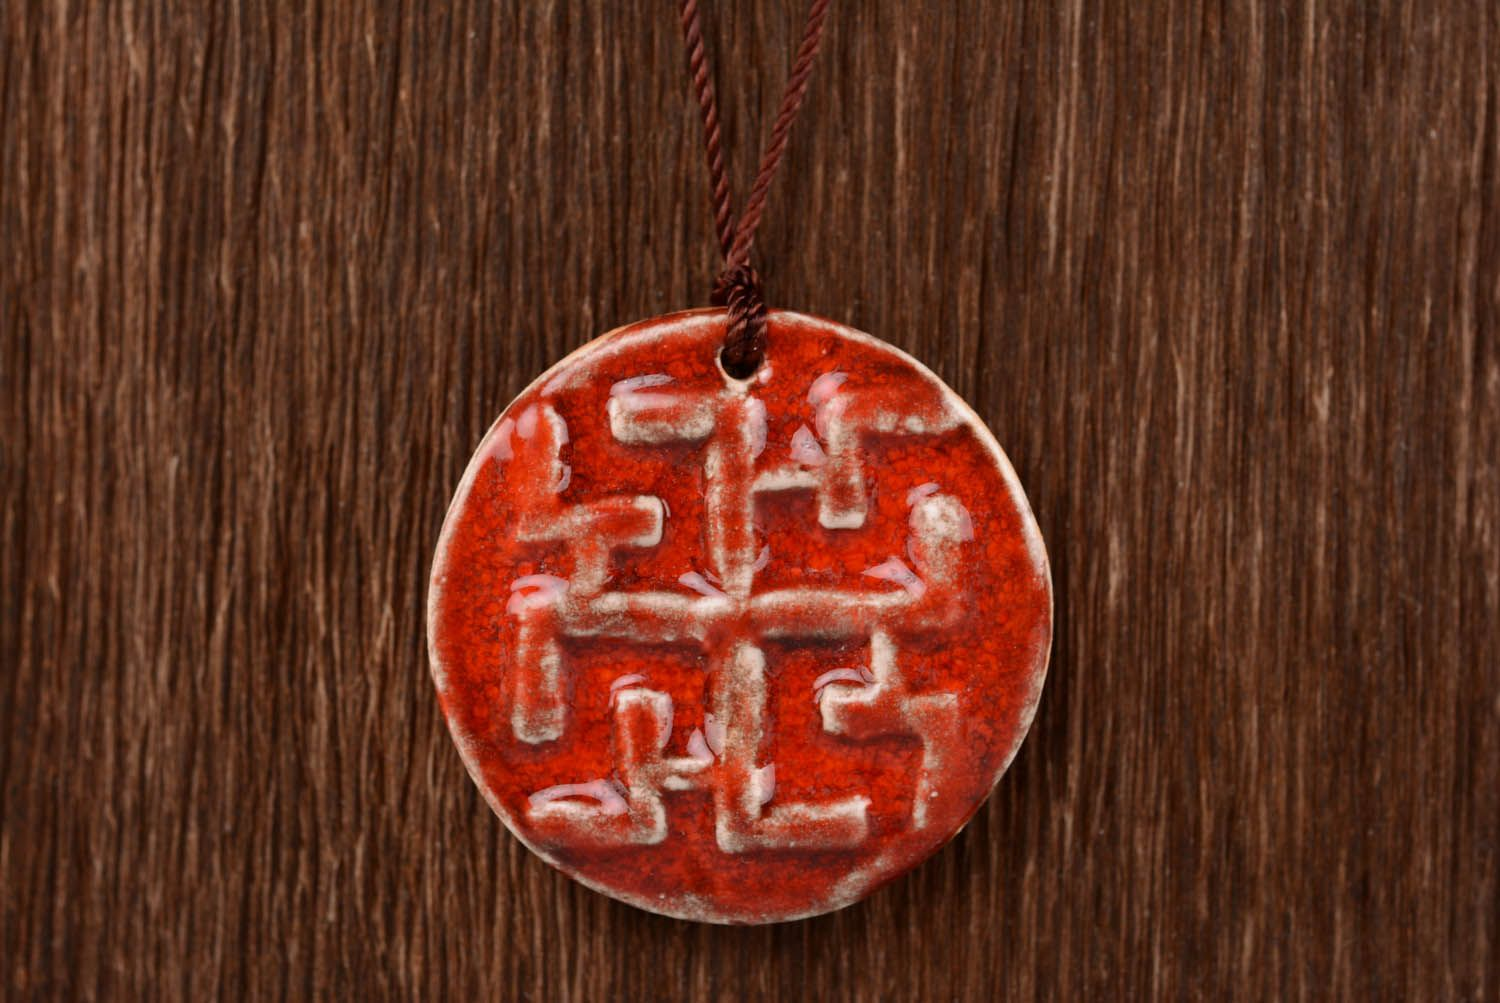 Ceramic Slavic amulet Dukhobor photo 4